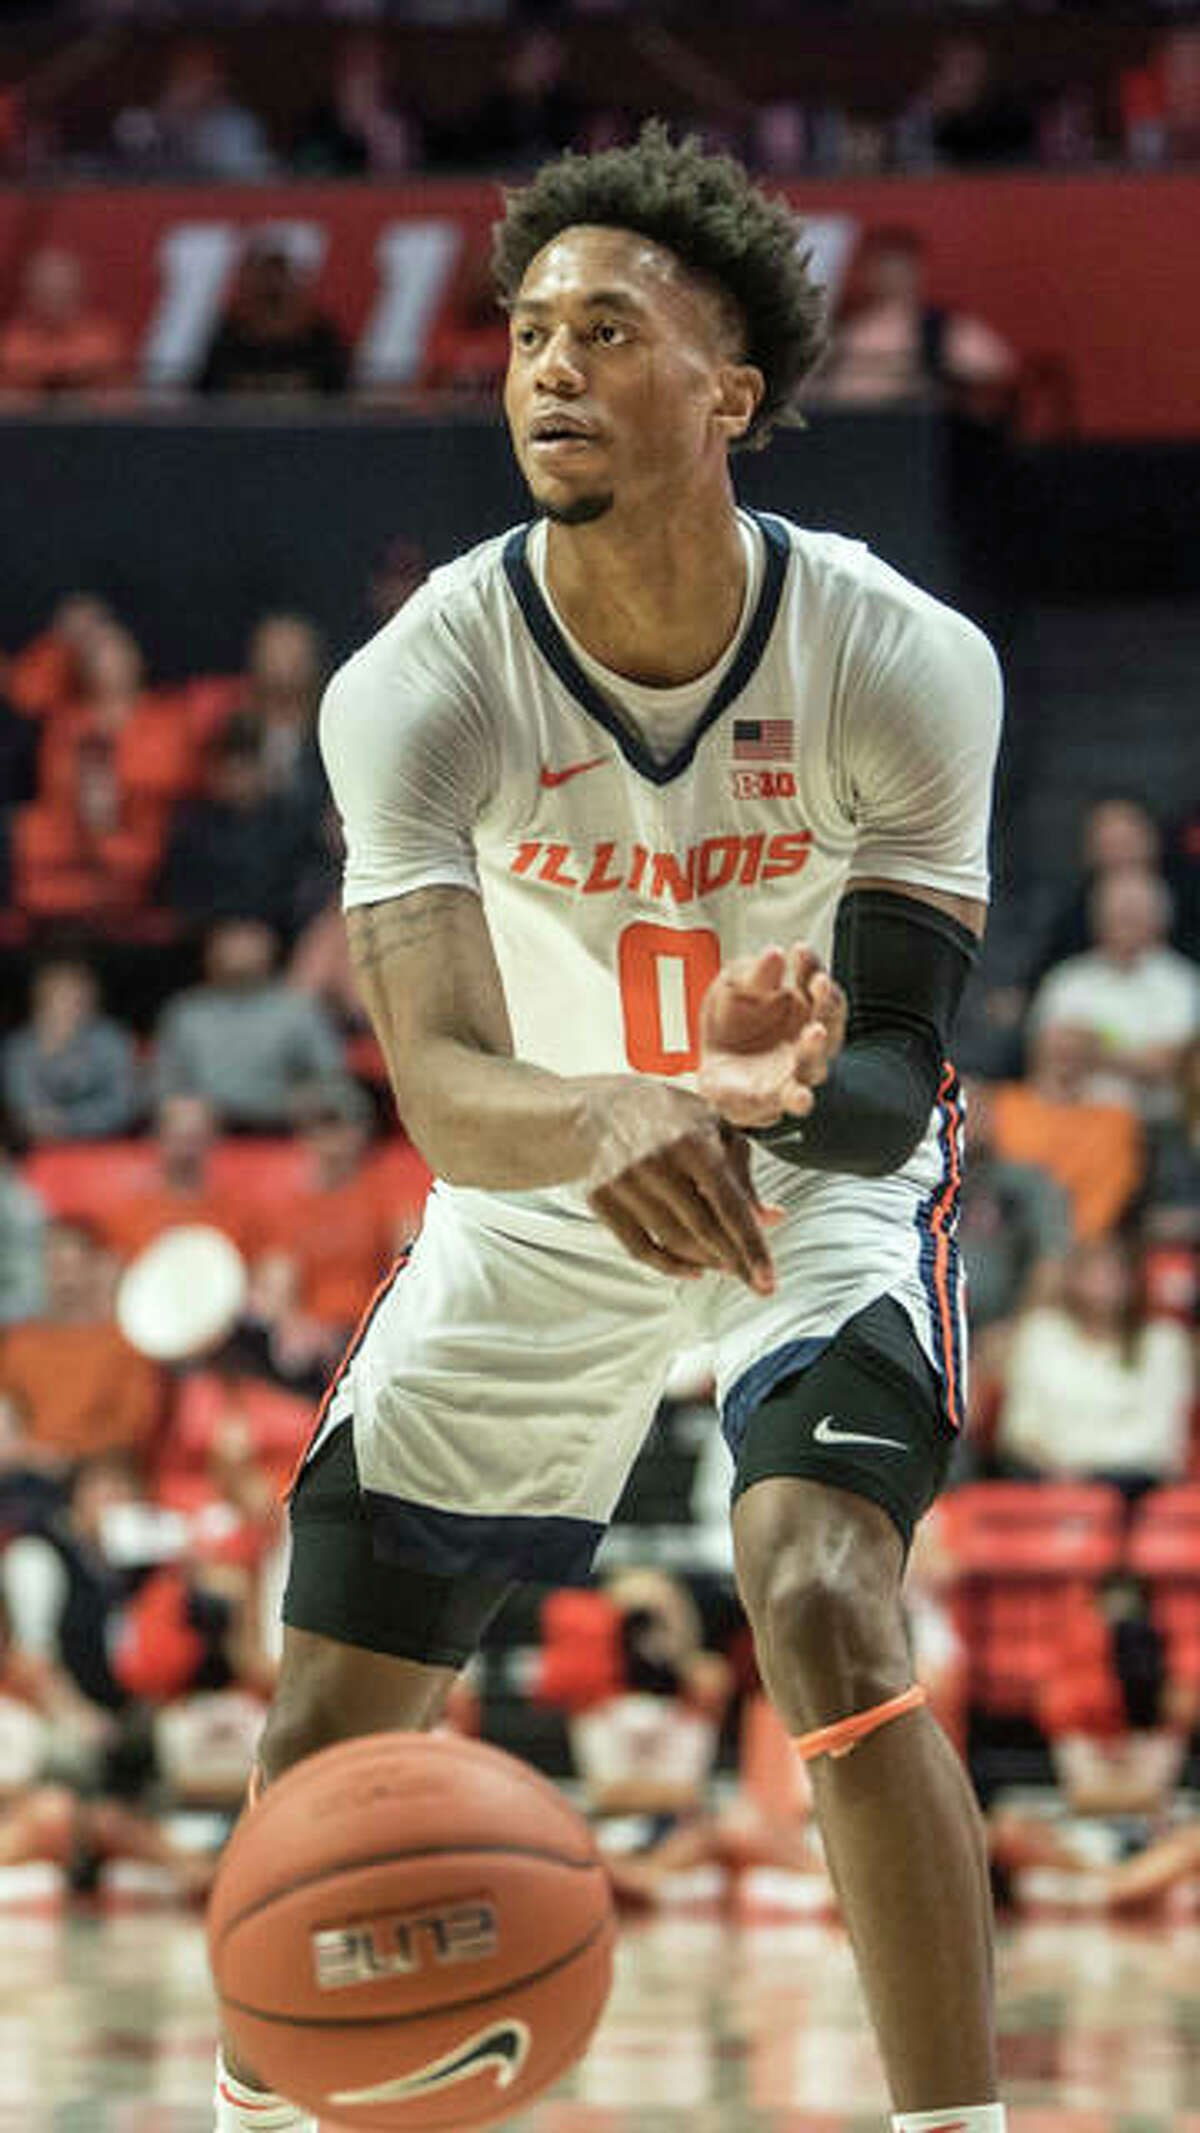 Illinois' Alan Griffin passes the ball against Iowa in a March 8 game in Champaign. Griffin, a sophomore, announced he will transfer from Illinois.